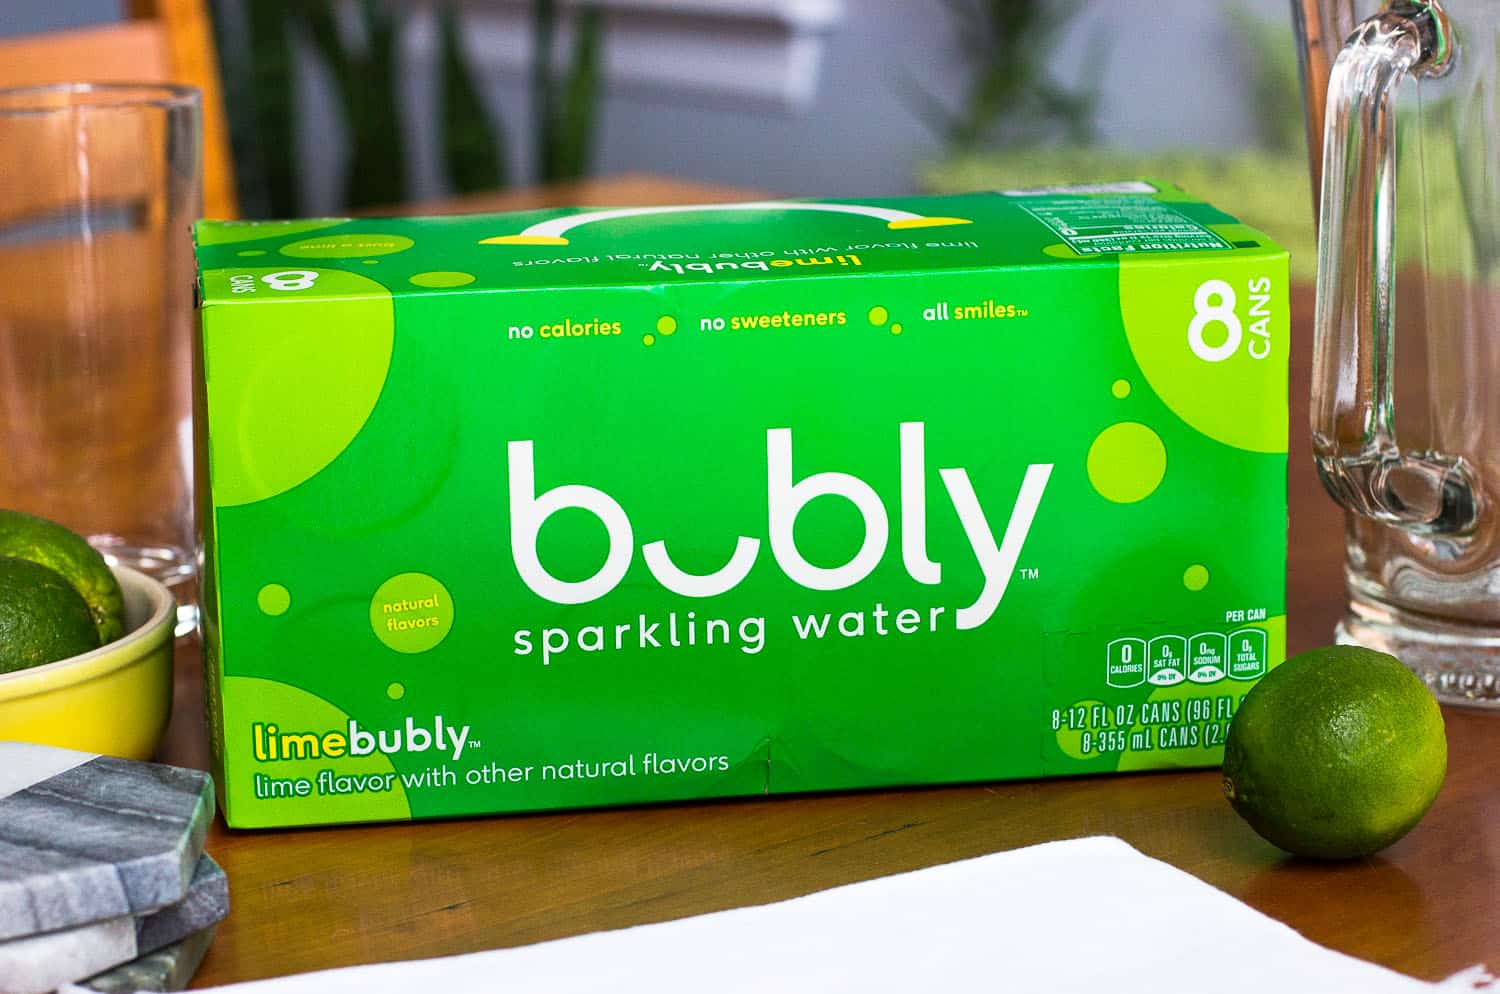 A carton of lime bubly cans on a wooden table.